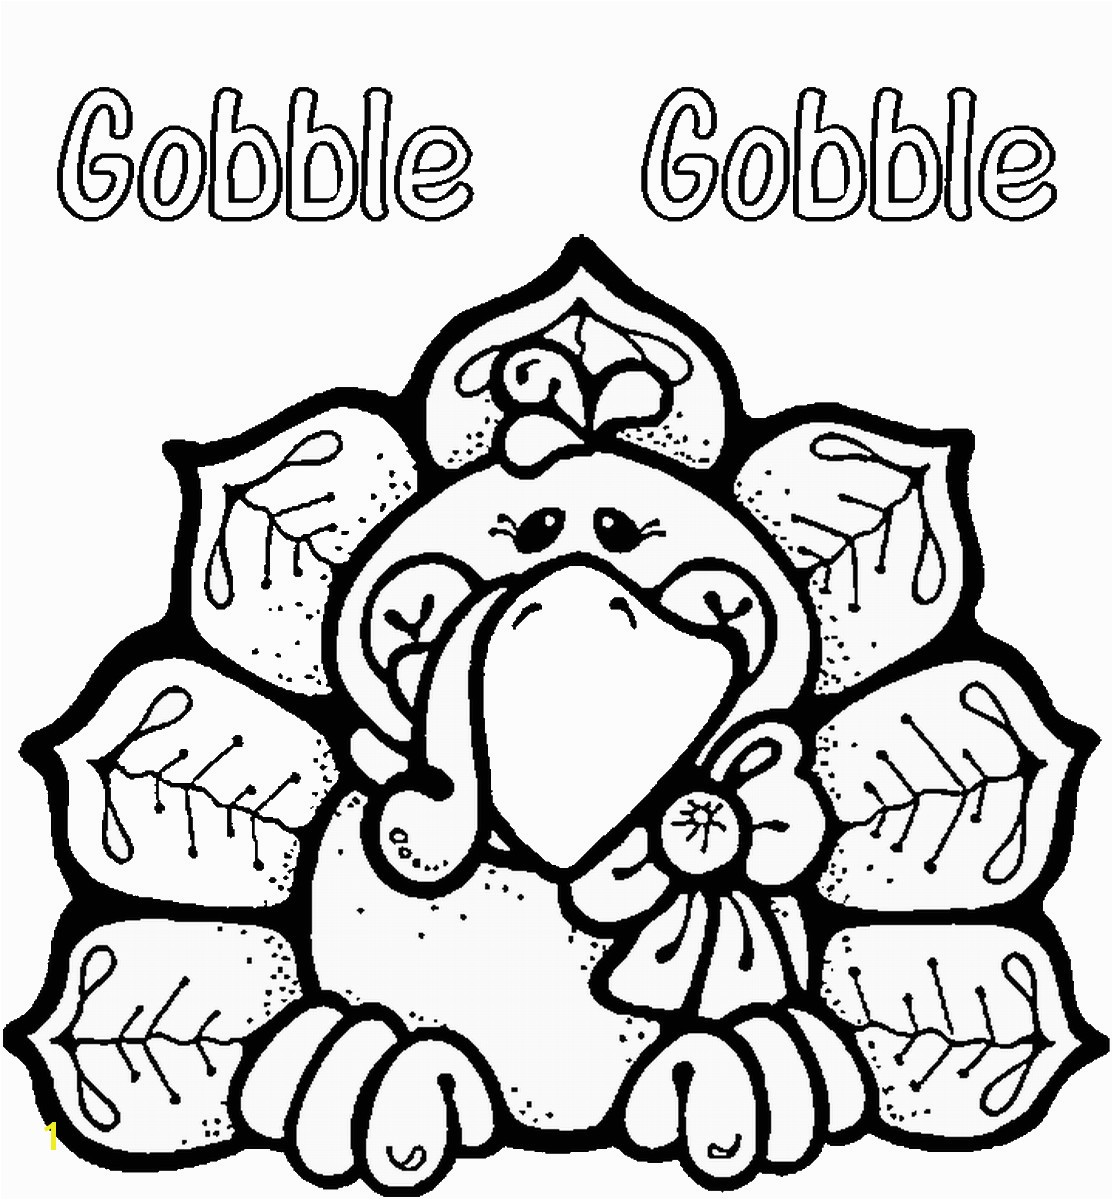 Free Thanksgiving Coloring Pages for Kindergarten New Cute Printable Coloring Pages New Printable Od Dog Coloring